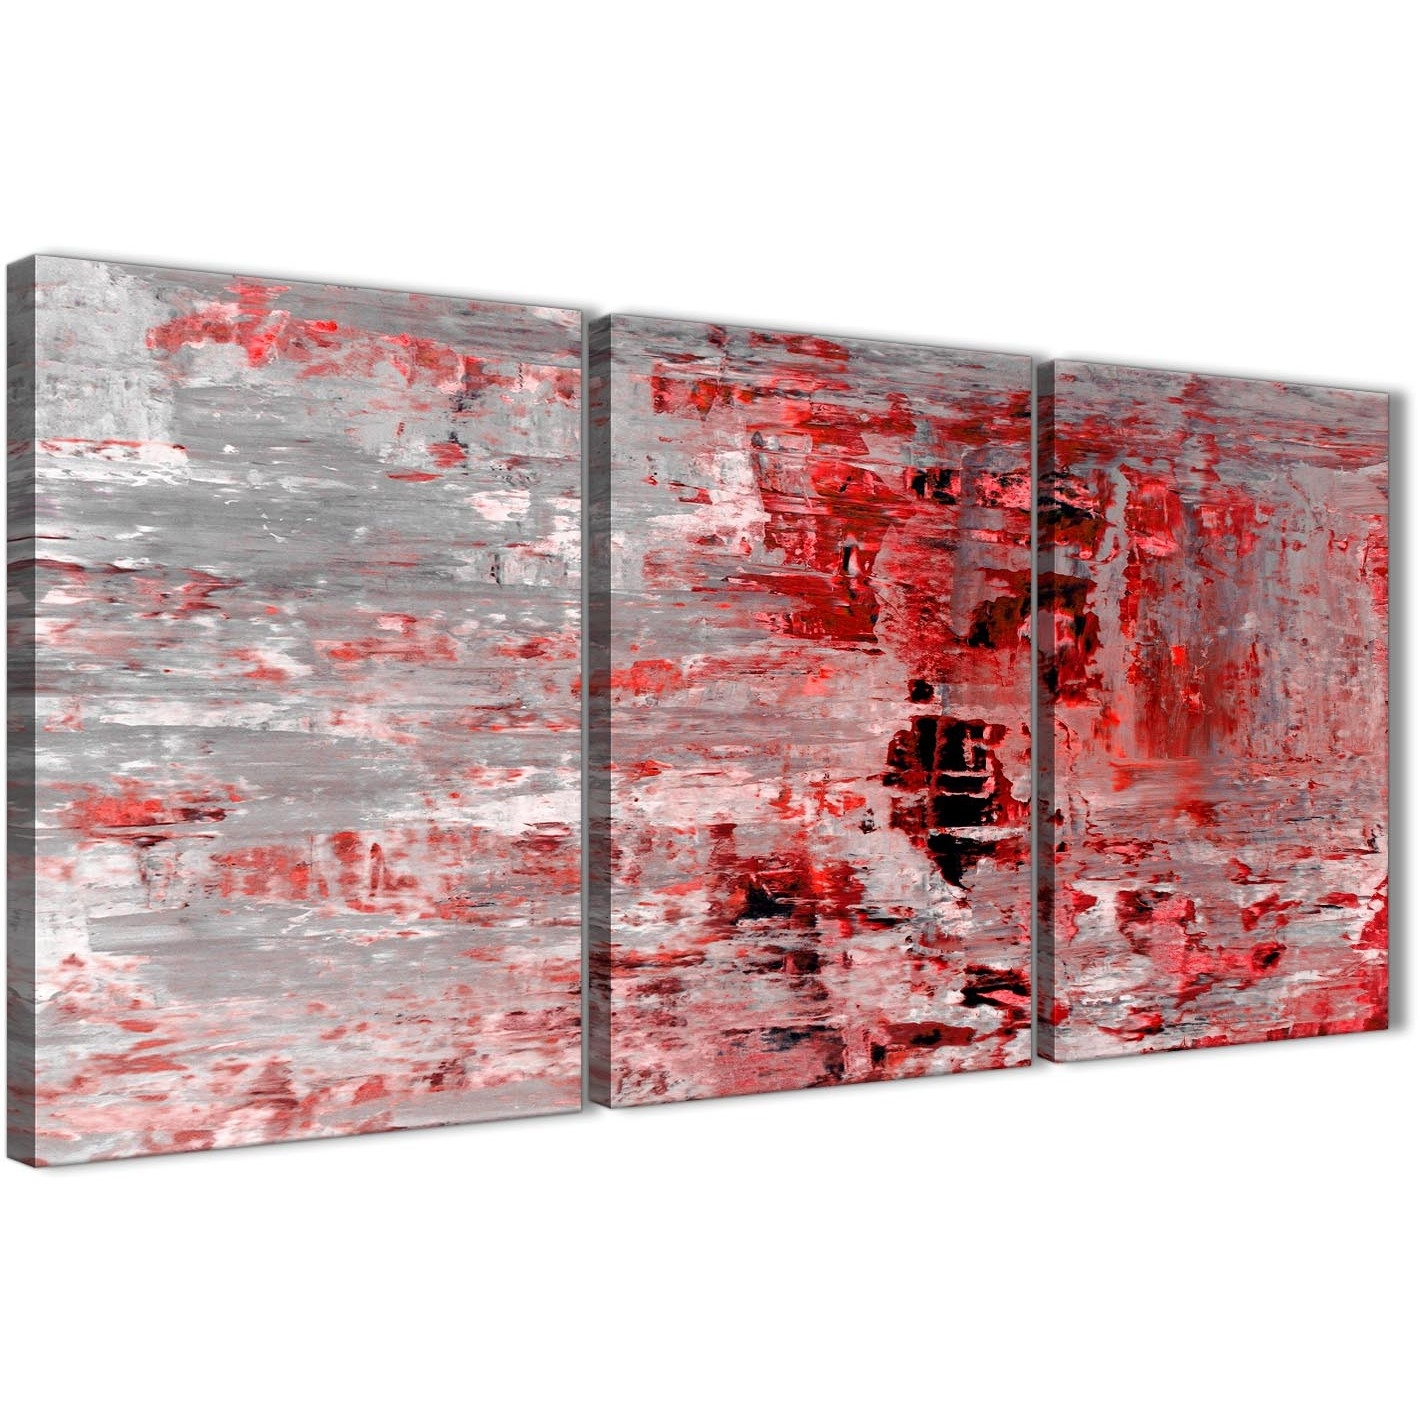 3 Piece Red Grey Painting Living Room Canvas Wall Art Decor Pertaining To Kitchen Canvas Wall Art (Photo 2 of 20)